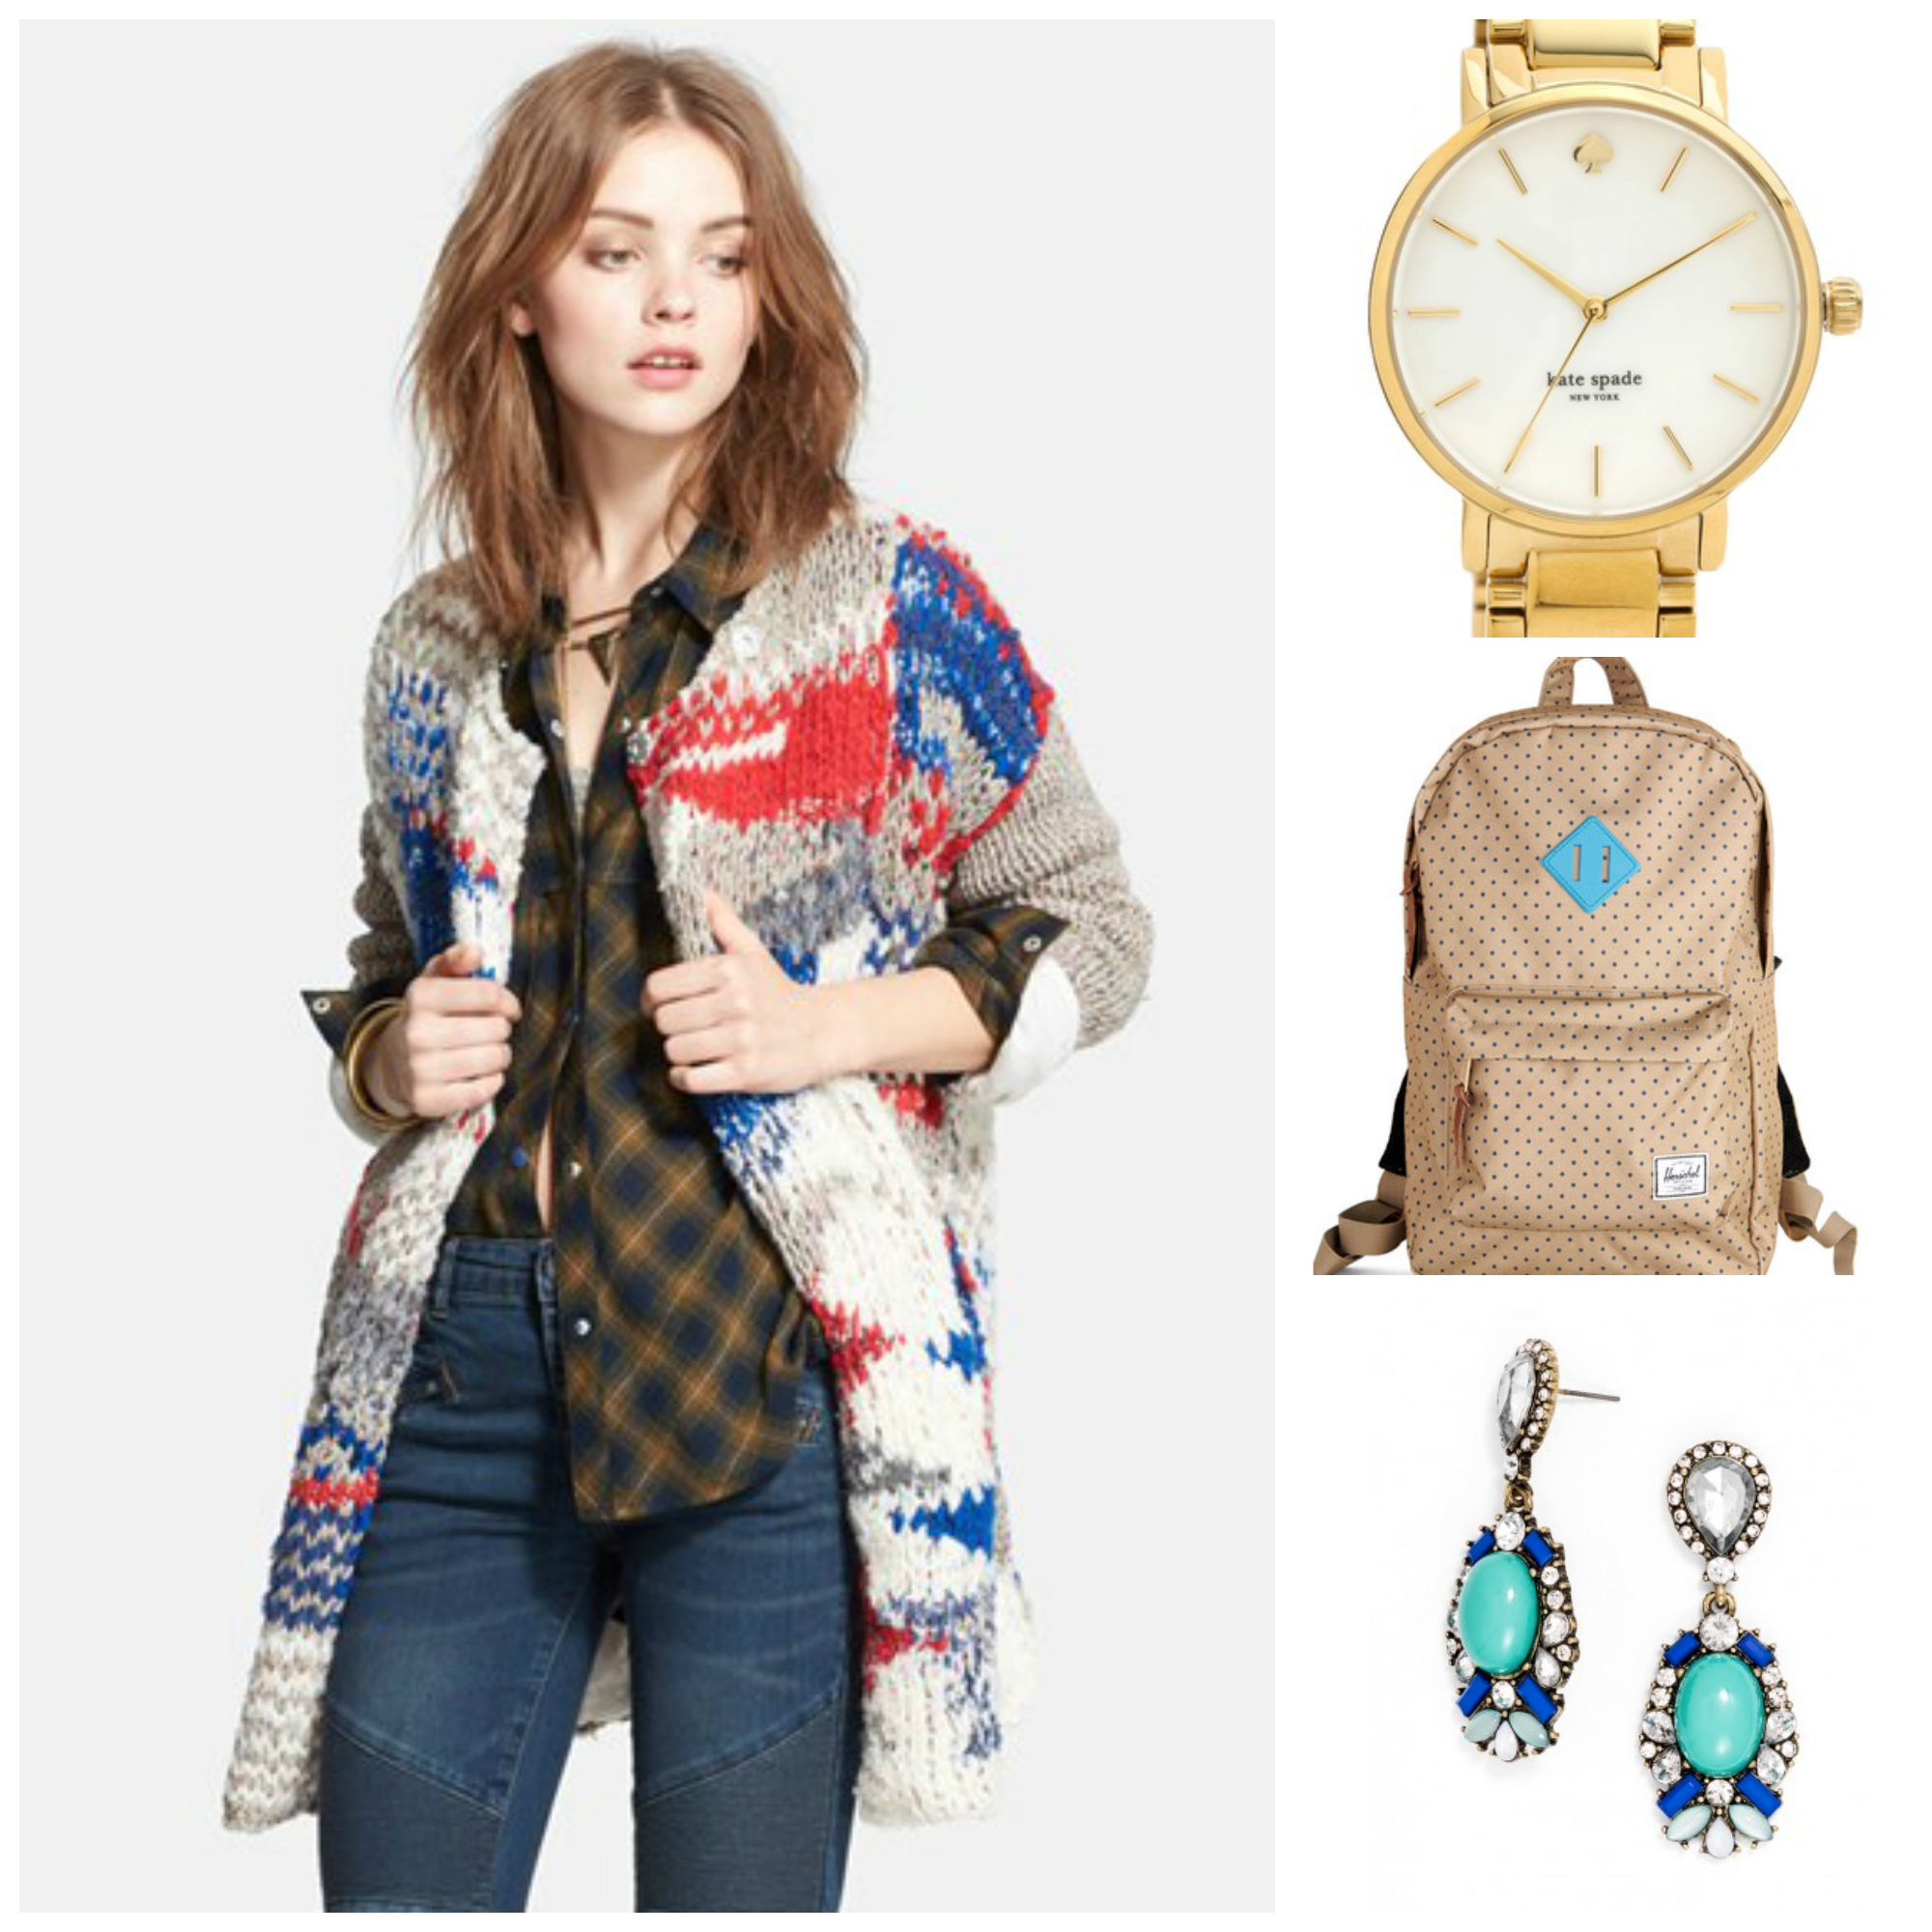 Shop the look: Back to school clothes and accessories